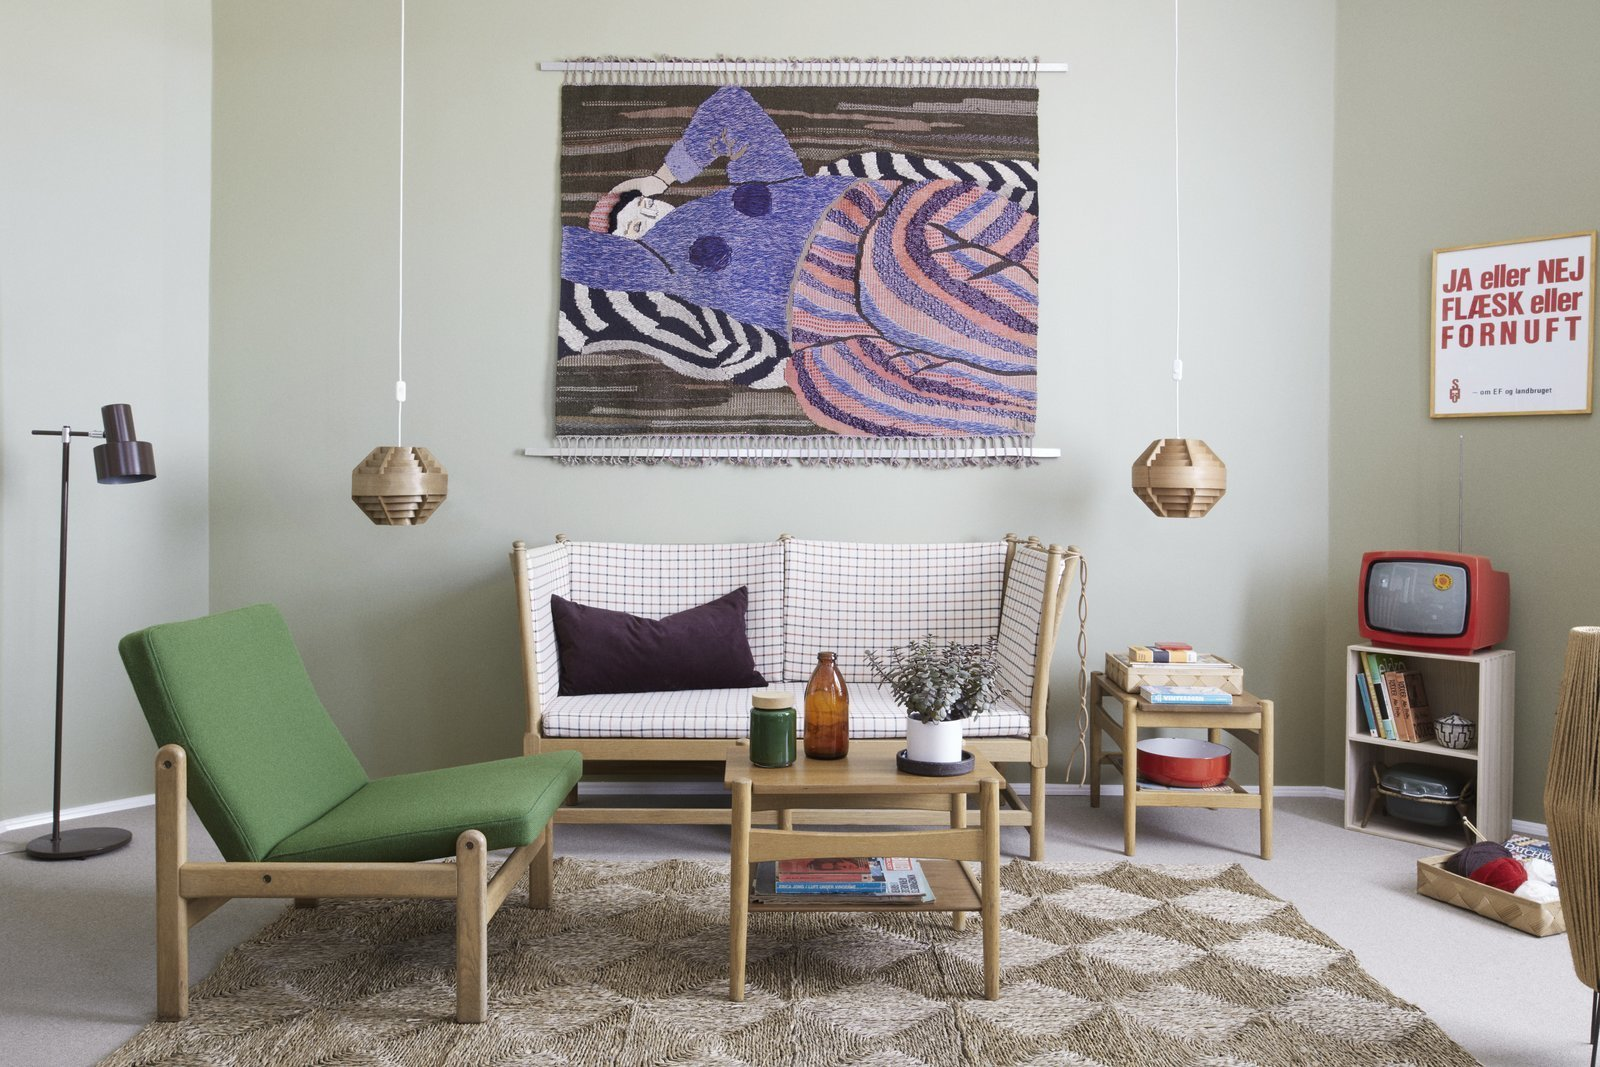 Living Room, End Tables, Chair, Coffee Tables, Rug Floor, Pendant Lighting, and Sofa  Photo 1 of 9 in Get Your Fix of Midcentury Scandinavian Design at This Copenhagen Hotel